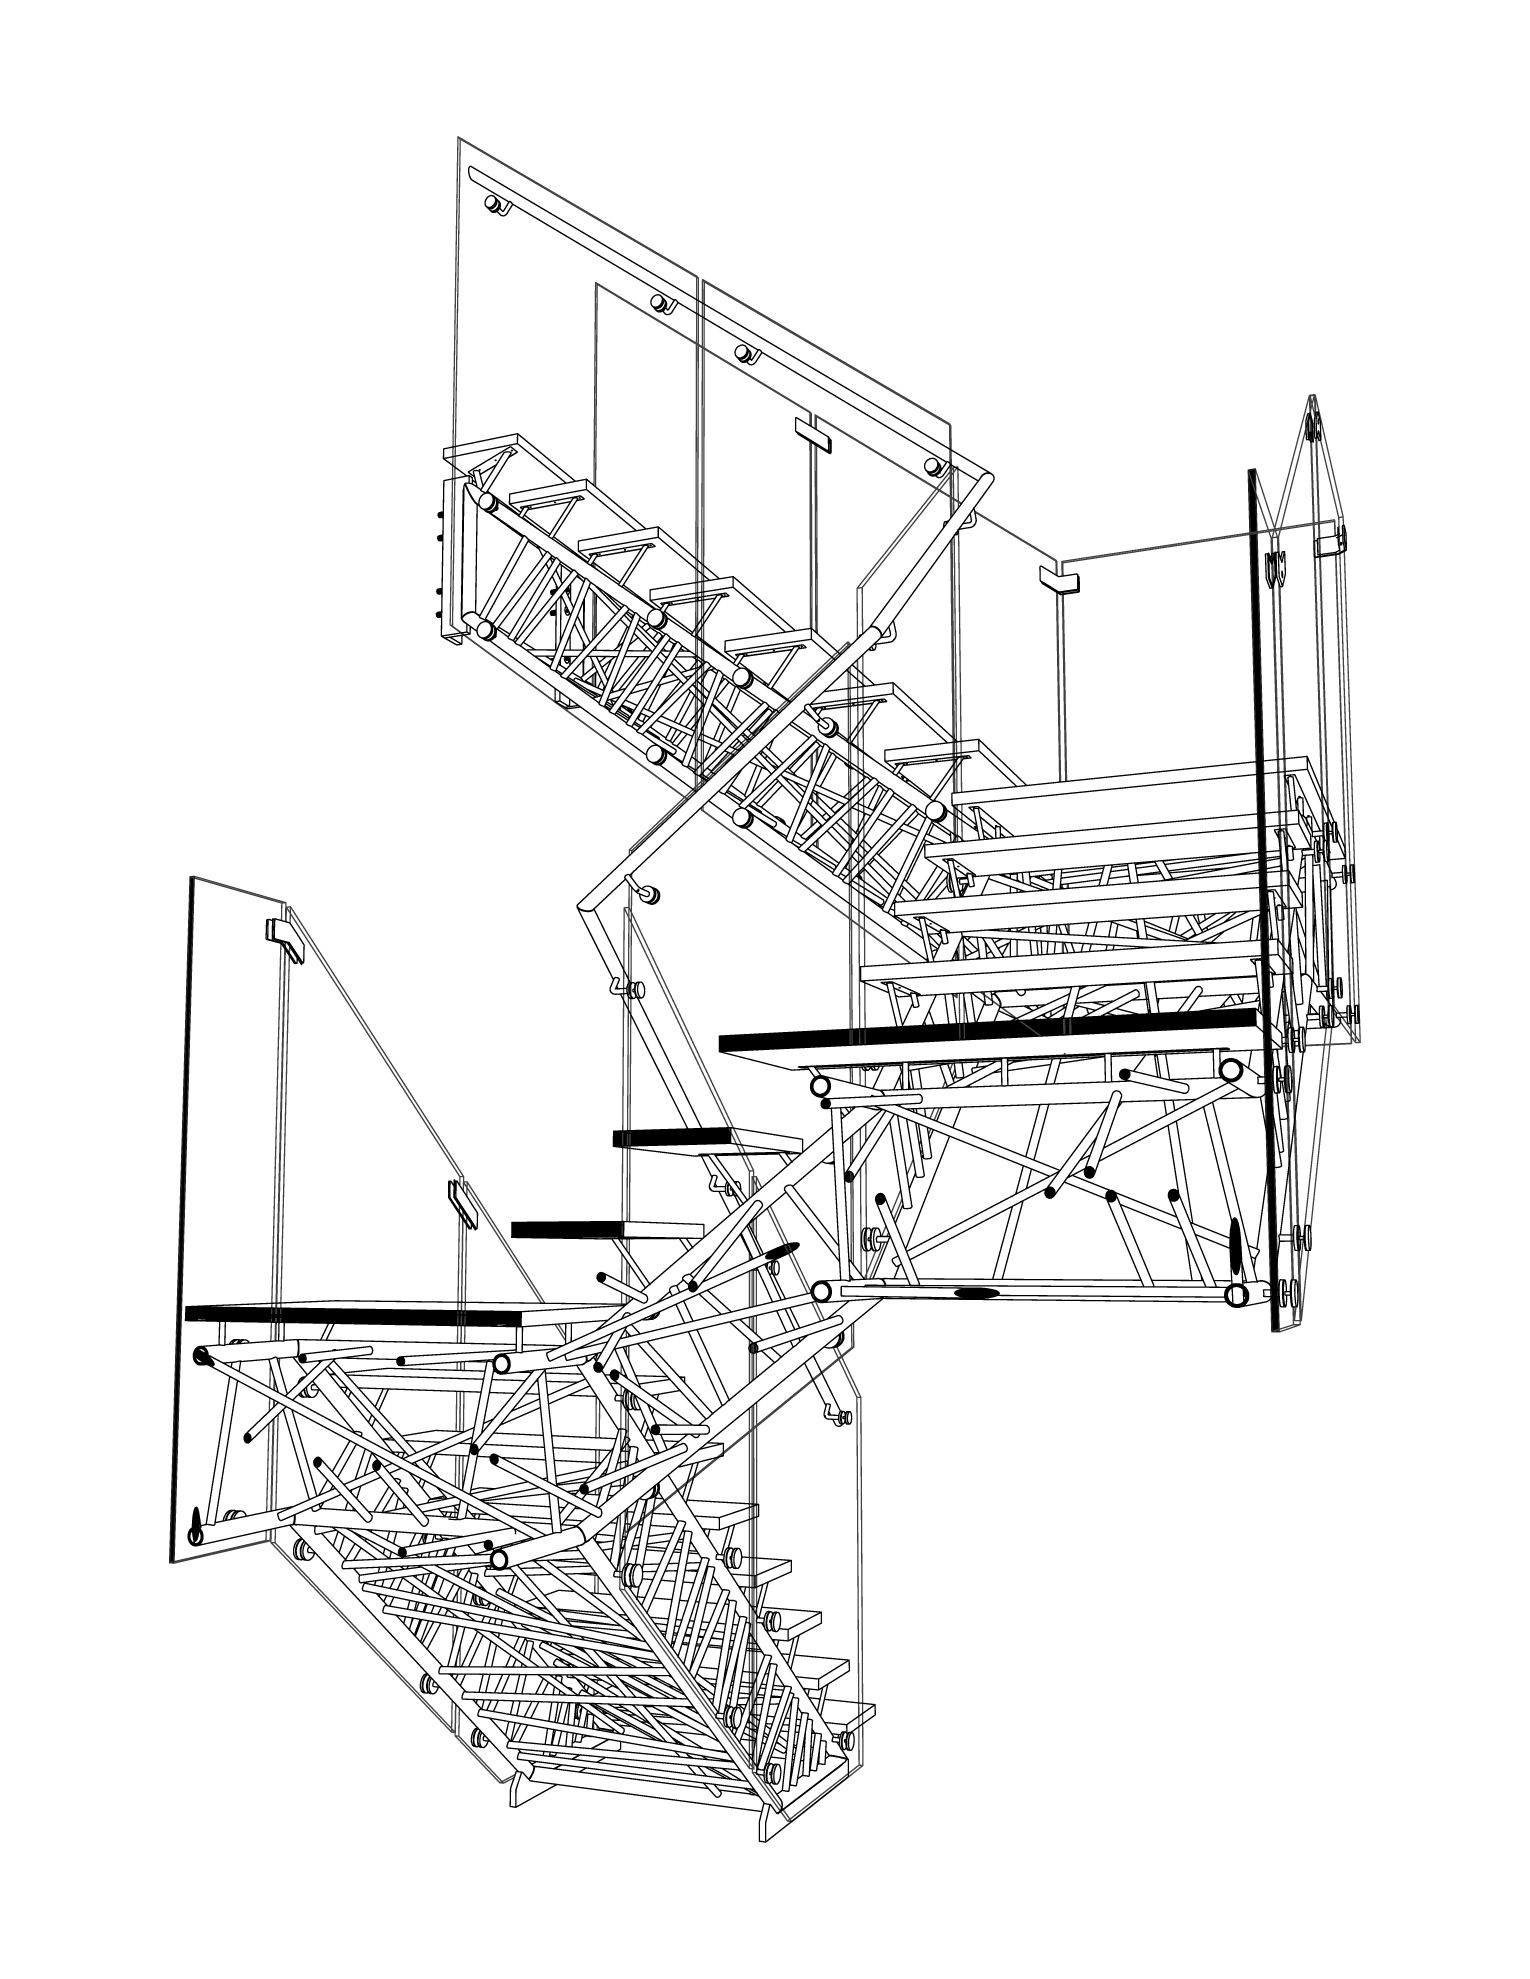 Genetic Stair Section Perspective Drawing Caliper Studio, 2006 2008 #stair # Structure #drawing #section #perspective #architecture #design  #visualization